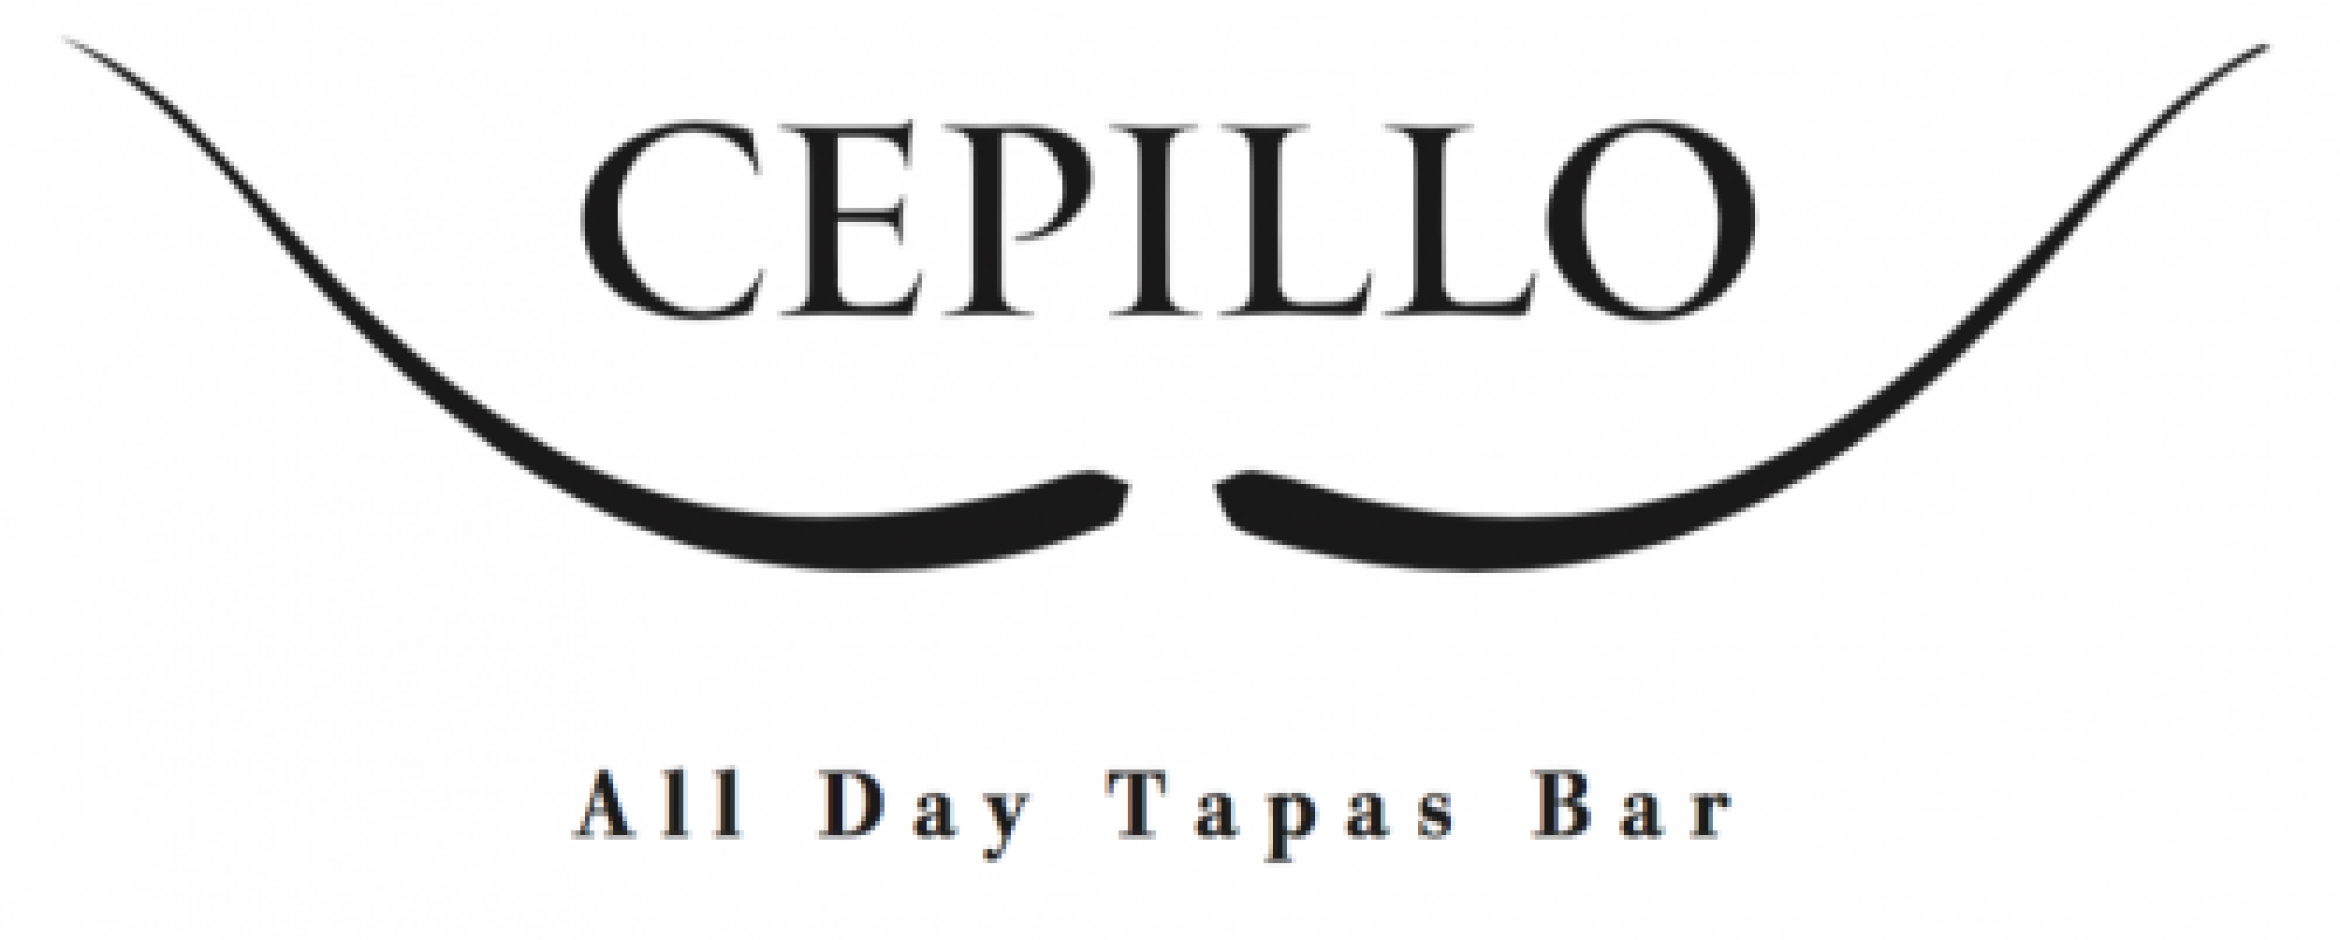 cepillo all day tapas bar κηφισιά